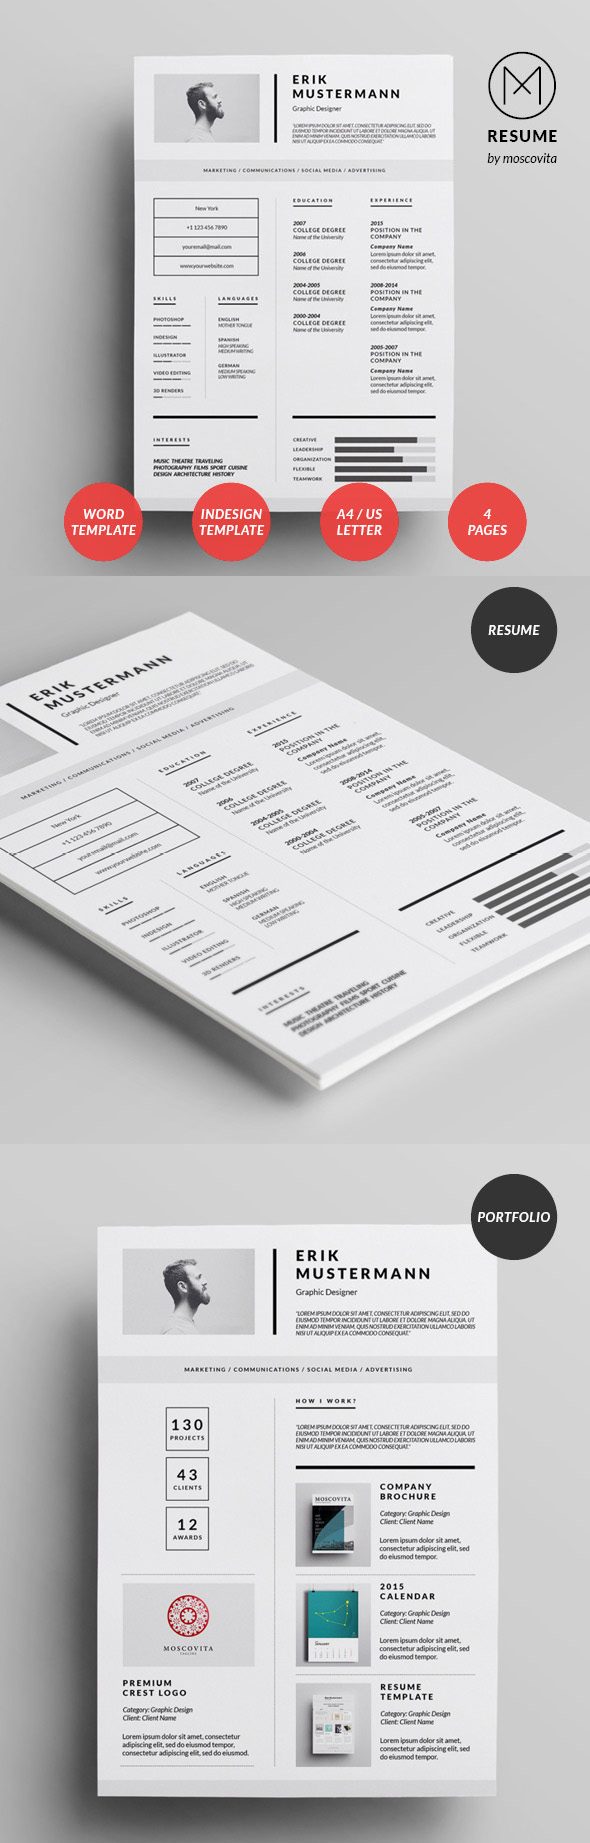 50 Best Resume Templates For 2018   32  Graphic Design Resume Template